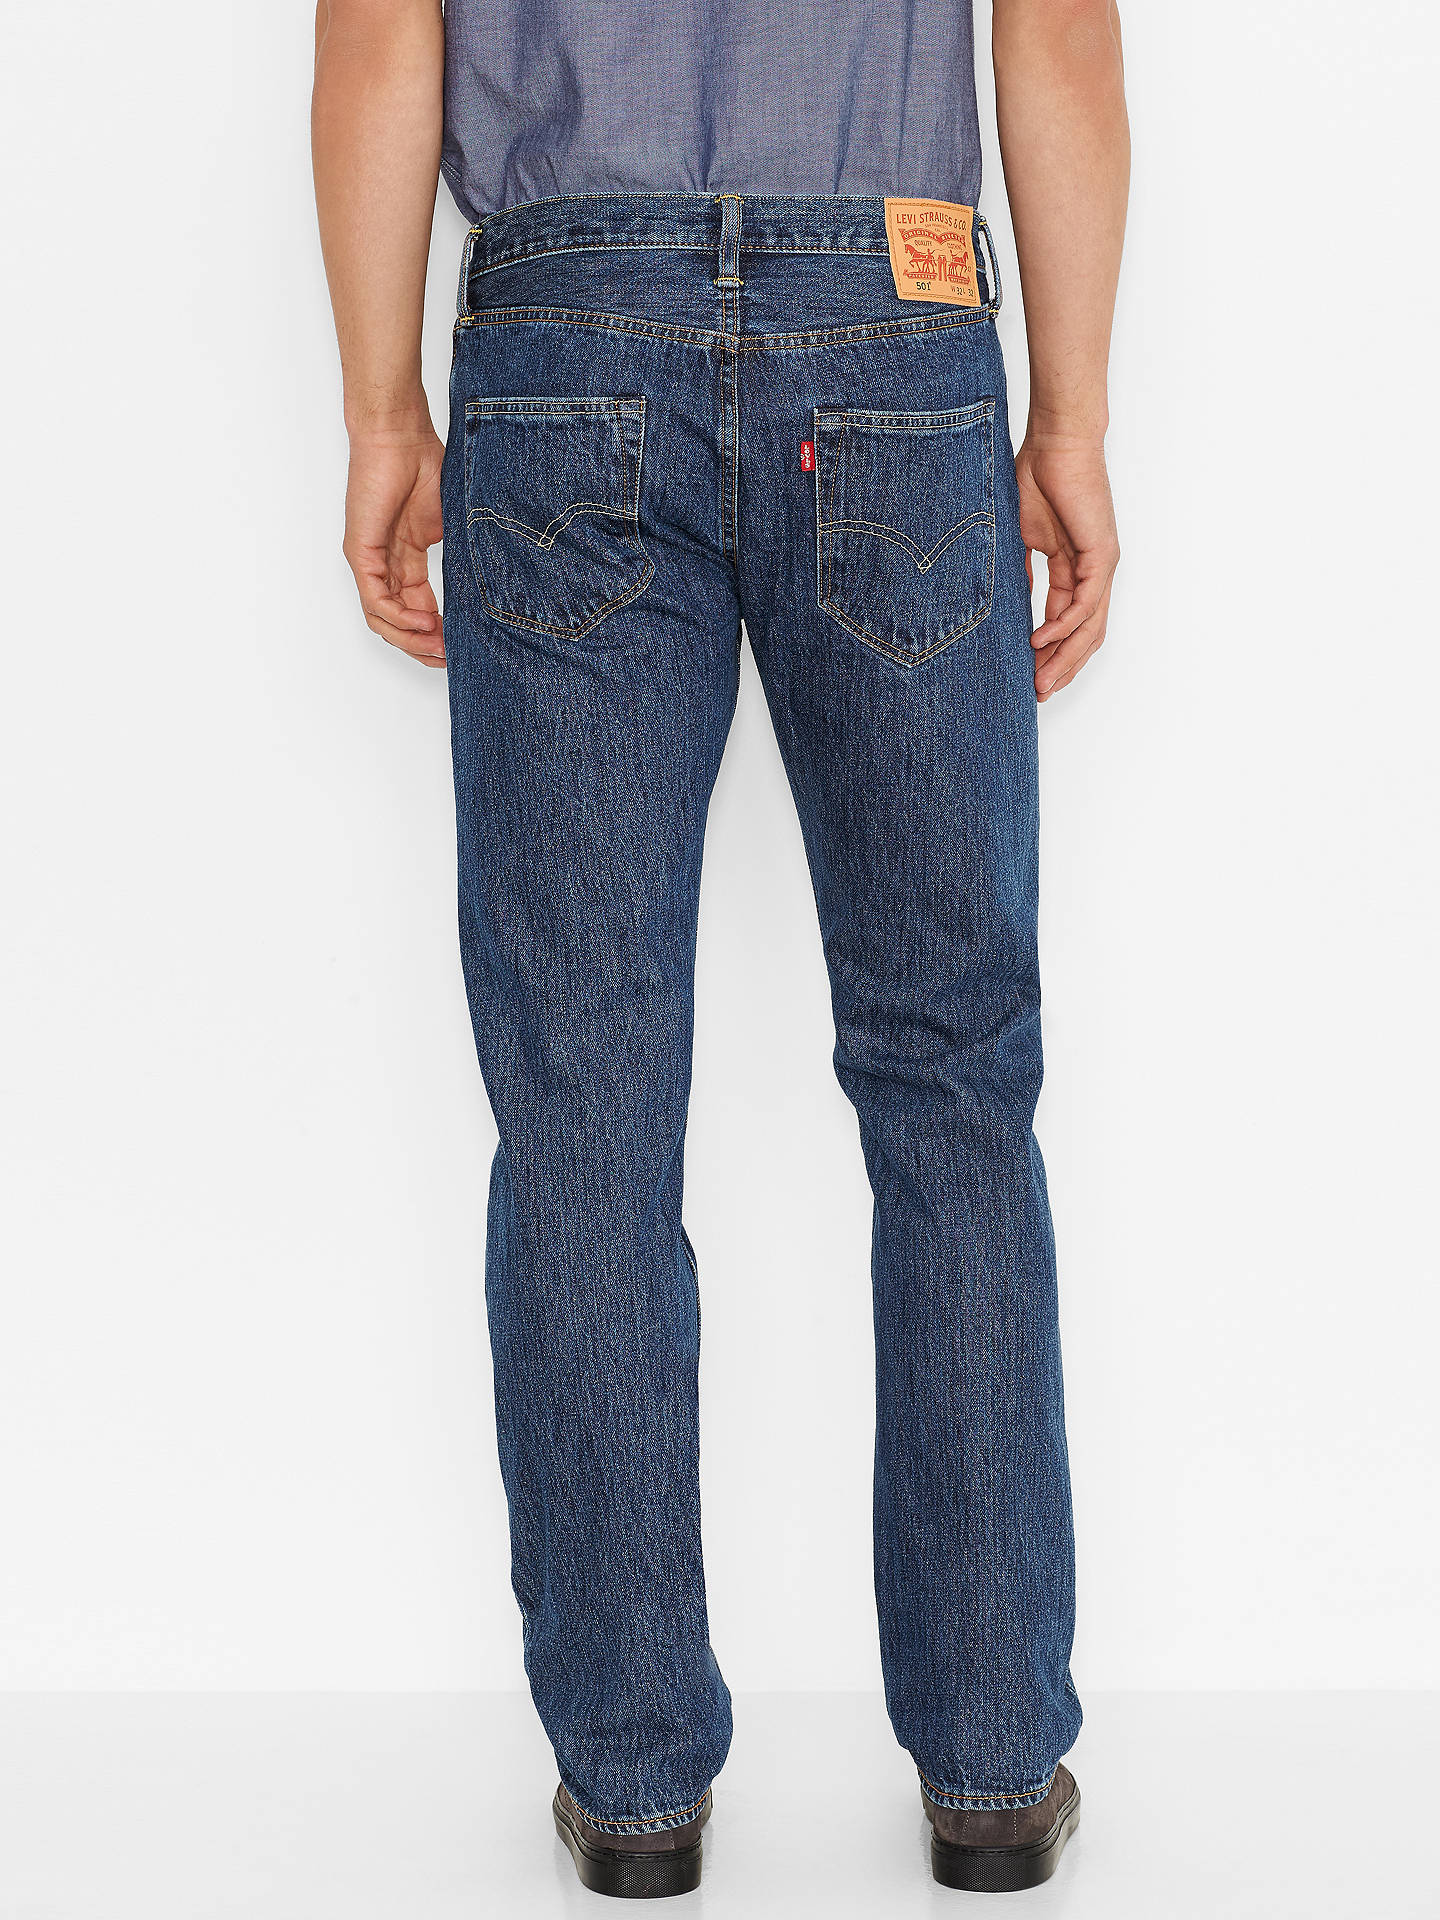 f78f7d80 ... Buy Levi's 501 Original Straight Jeans, Stonewash, 30S Online at  johnlewis. ...